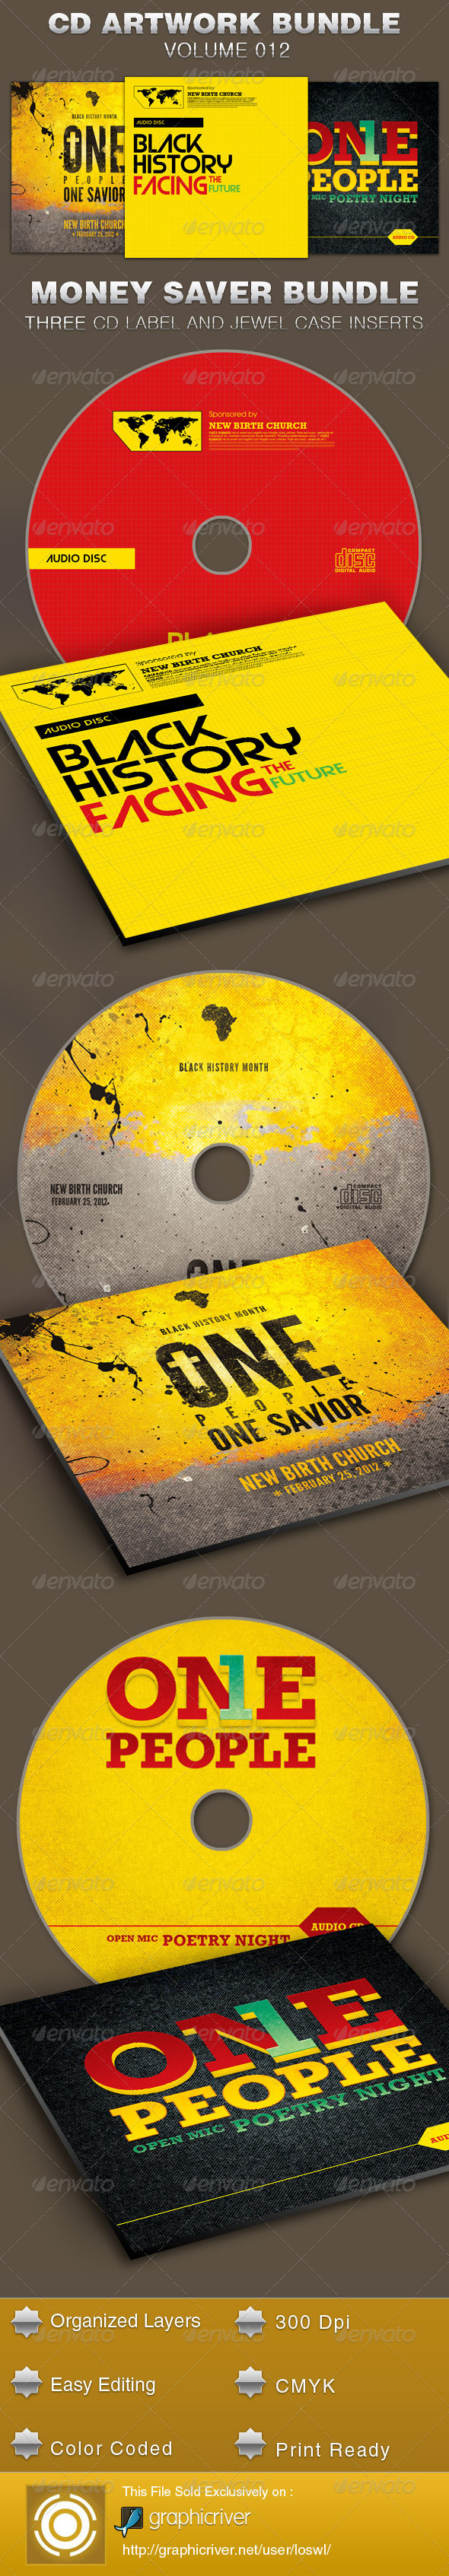 CD Cover Artwork Template Bundle-Vol 012 - CD & DVD artwork Print Templates